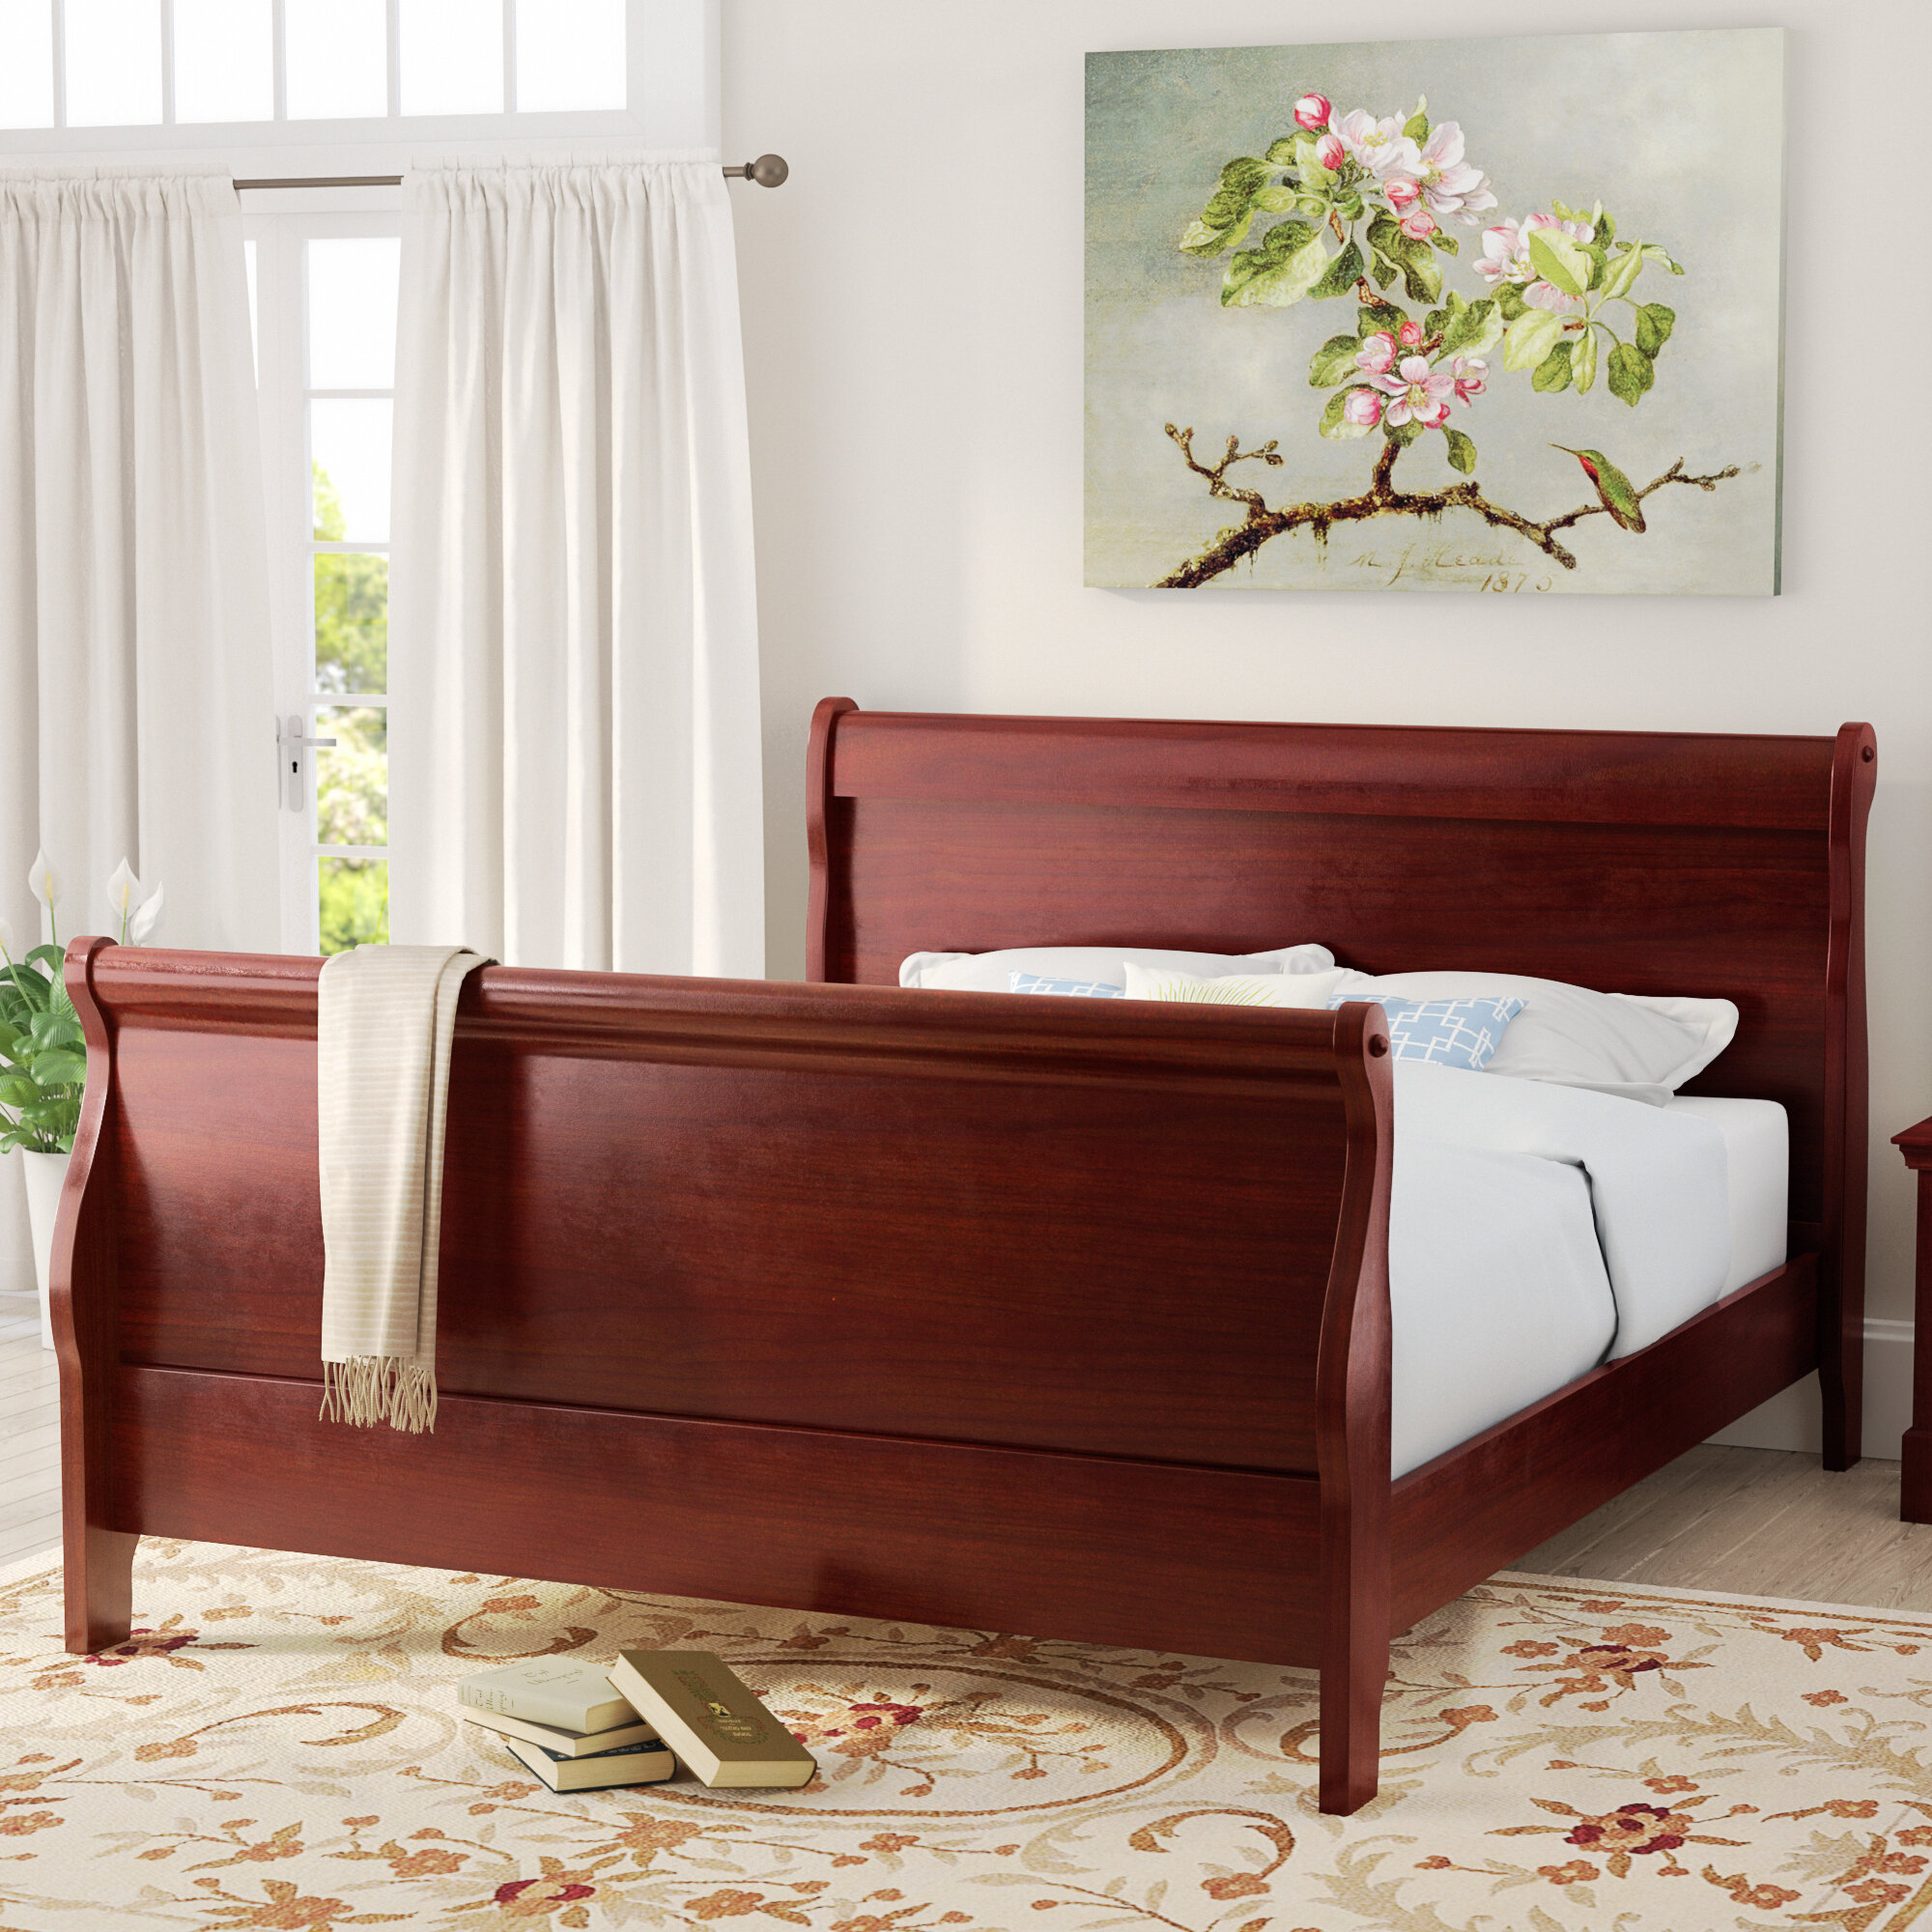 trim bed width cassimorequeen item products beds threshold ashley queen height upholstered cassimore signature by design sleigh